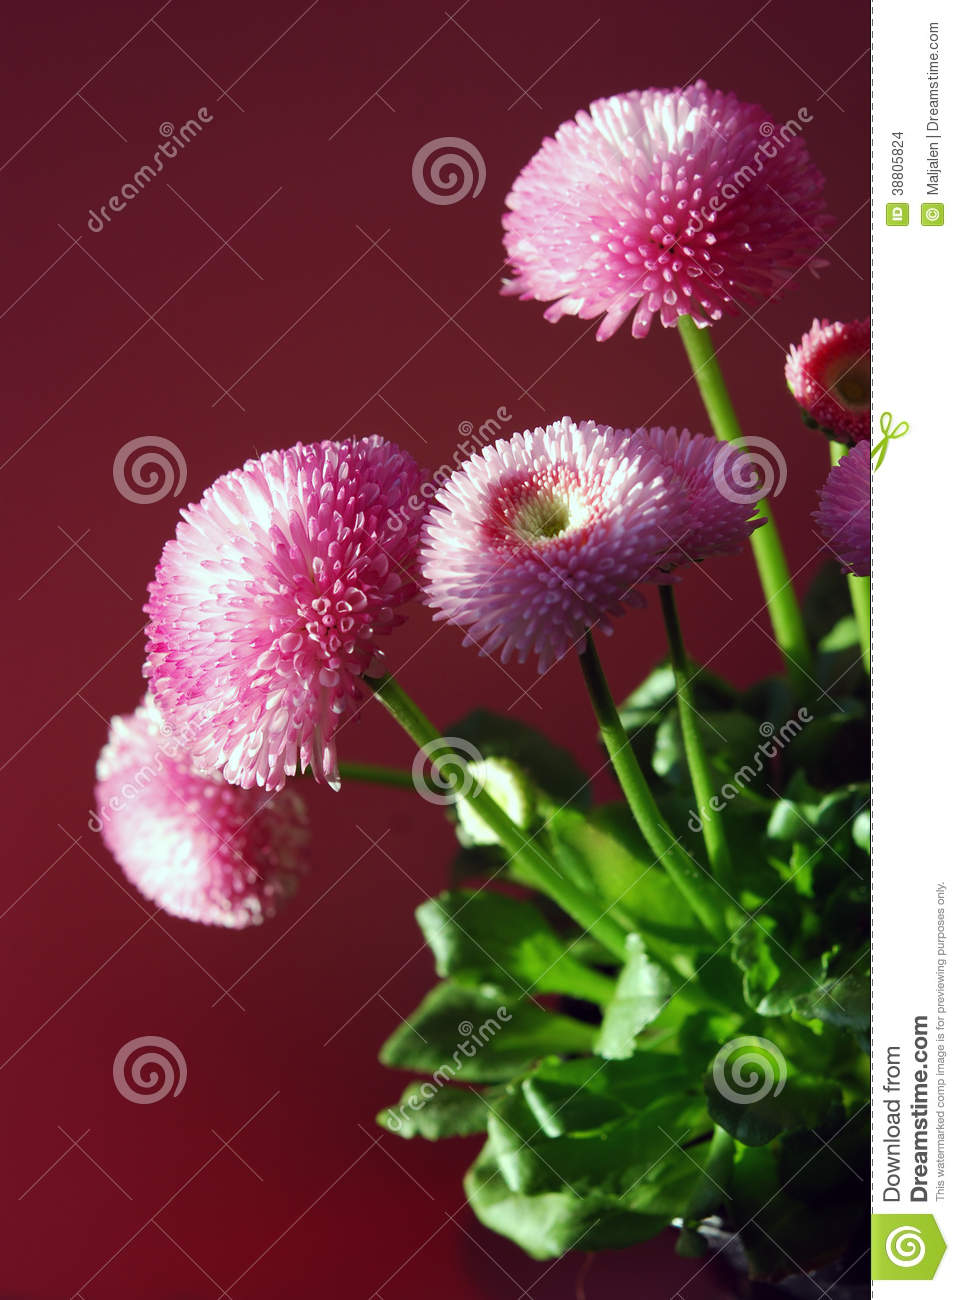 Double daisy flower stock photos download 213 images izmirmasajfo Image collections